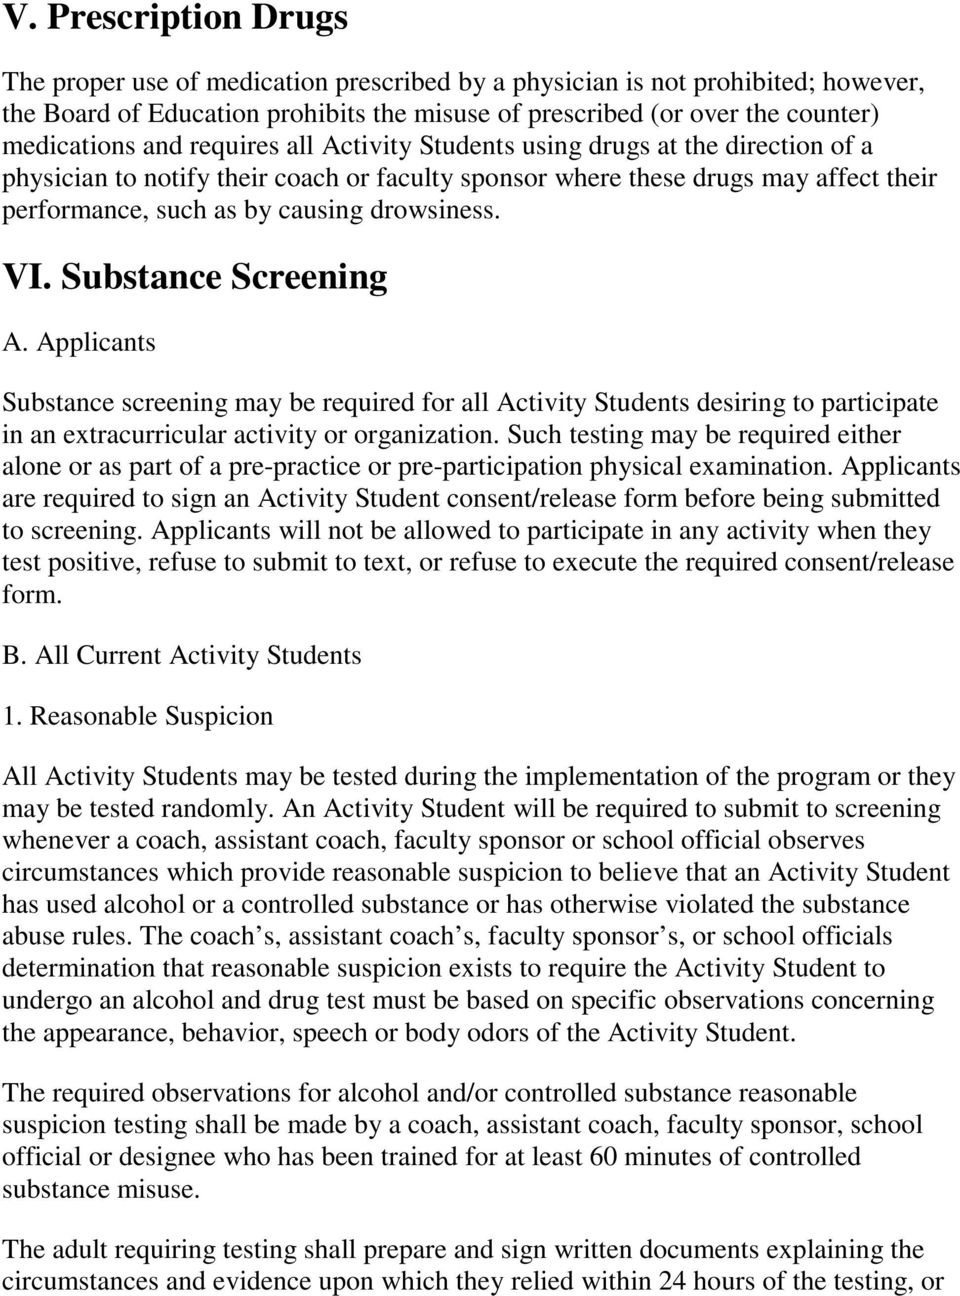 VI. Substance Screening A. Applicants Substance screening may be required for all Activity Students desiring to participate in an extracurricular activity or organization.